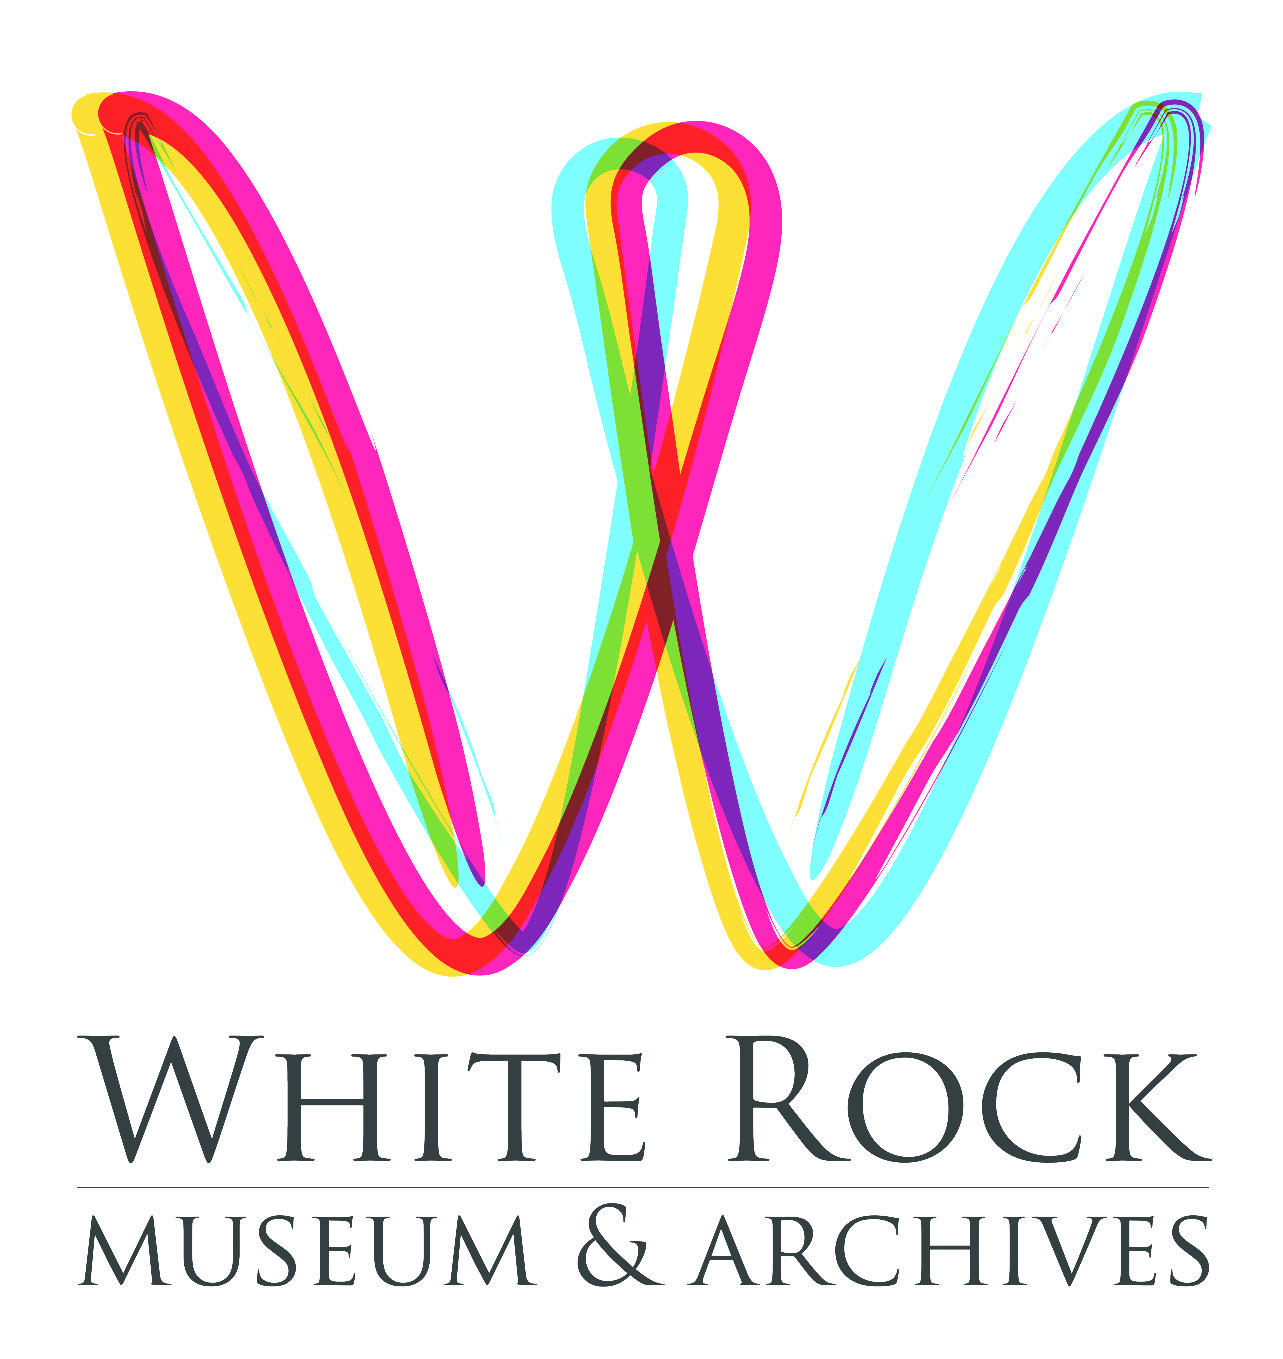 White Rock Museum & Archives logo